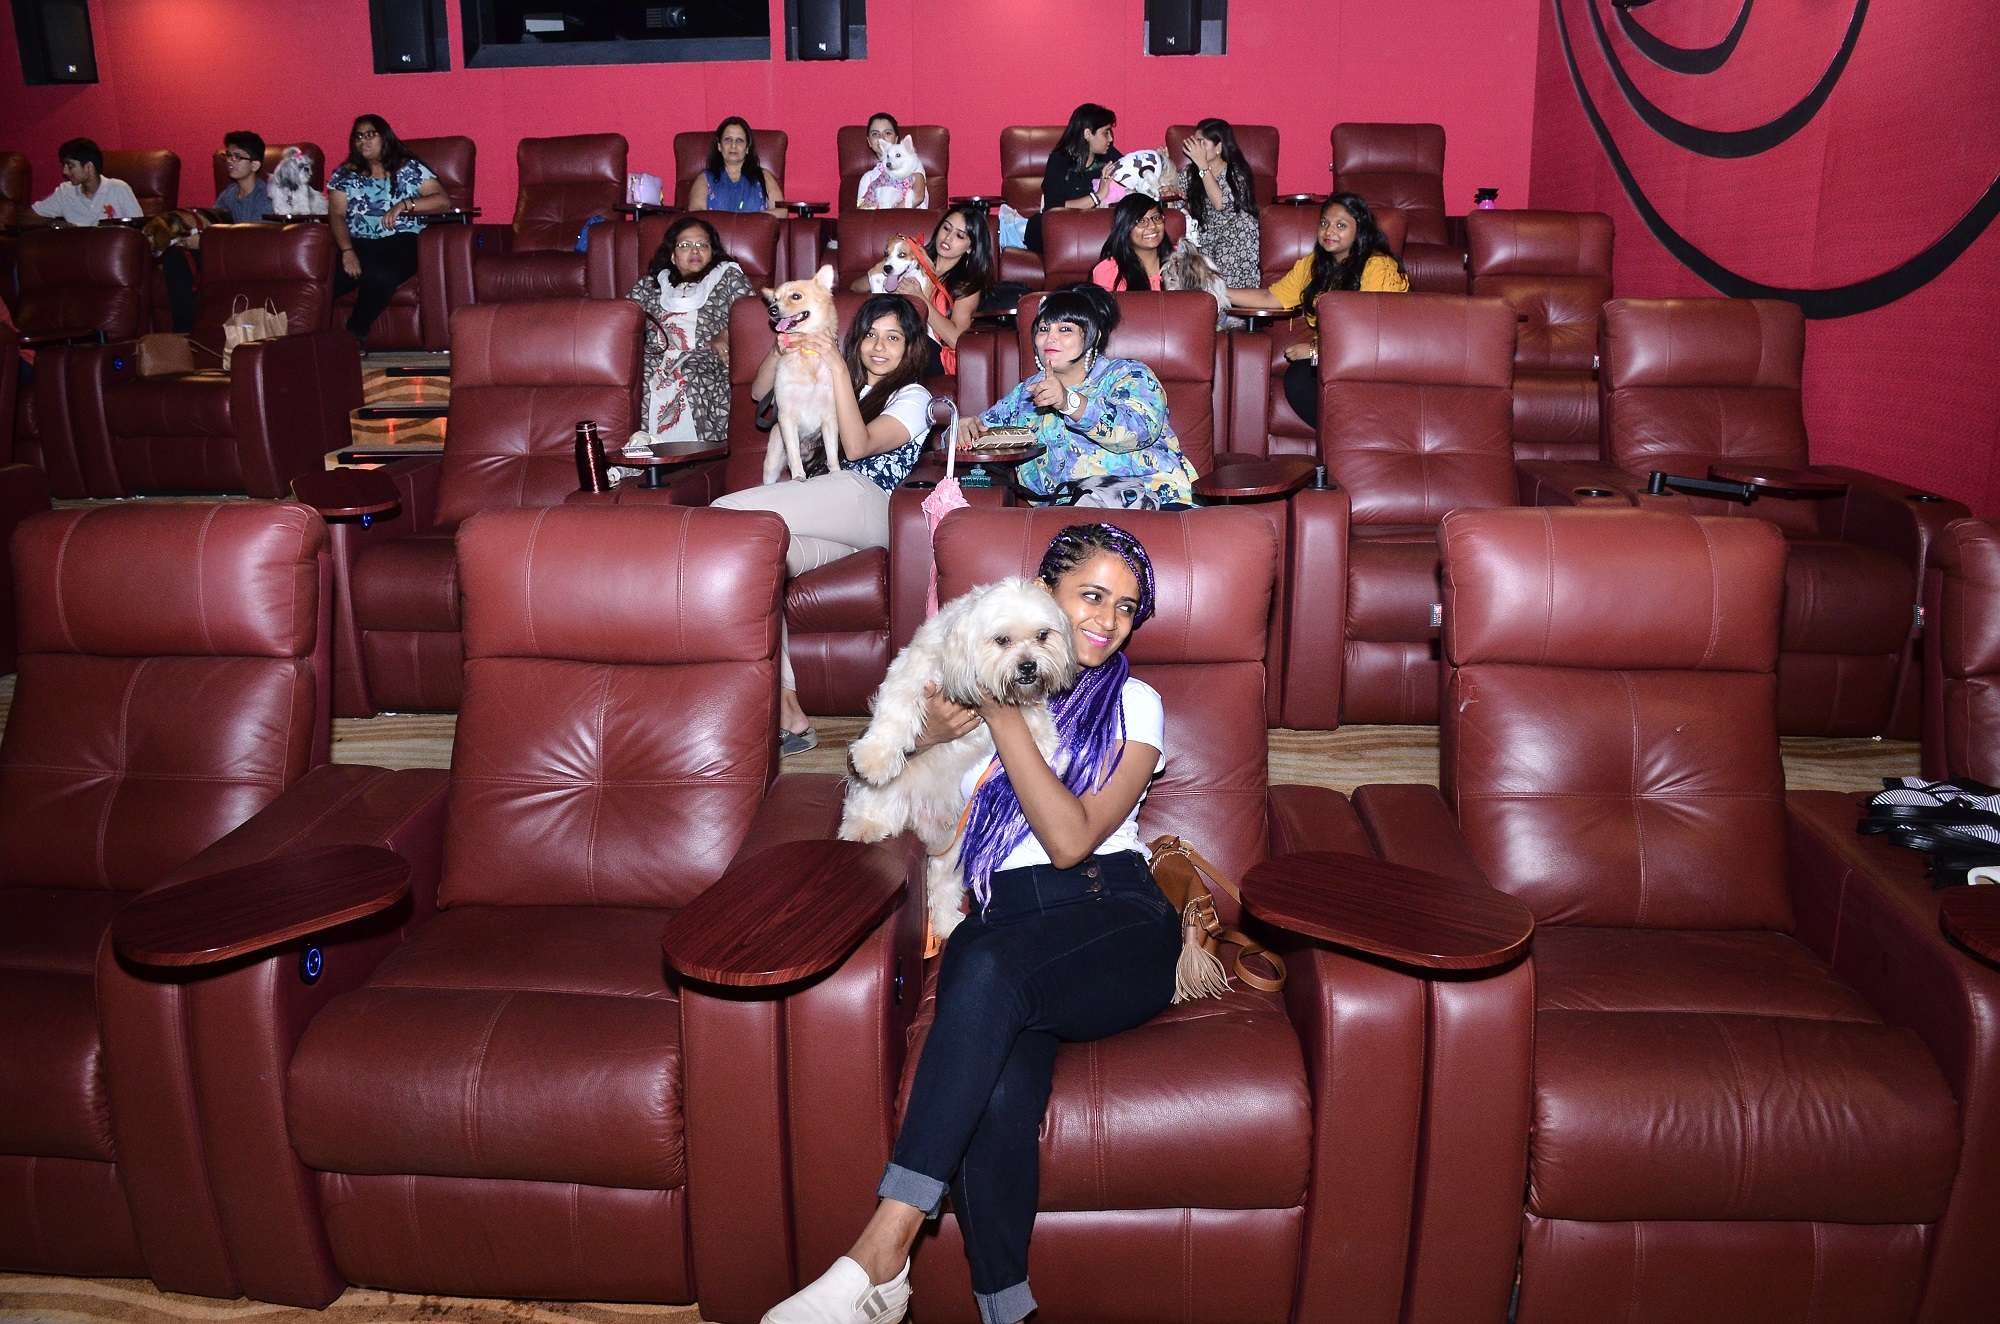 Isle of Dogs host a special screening for Dog lovers 2